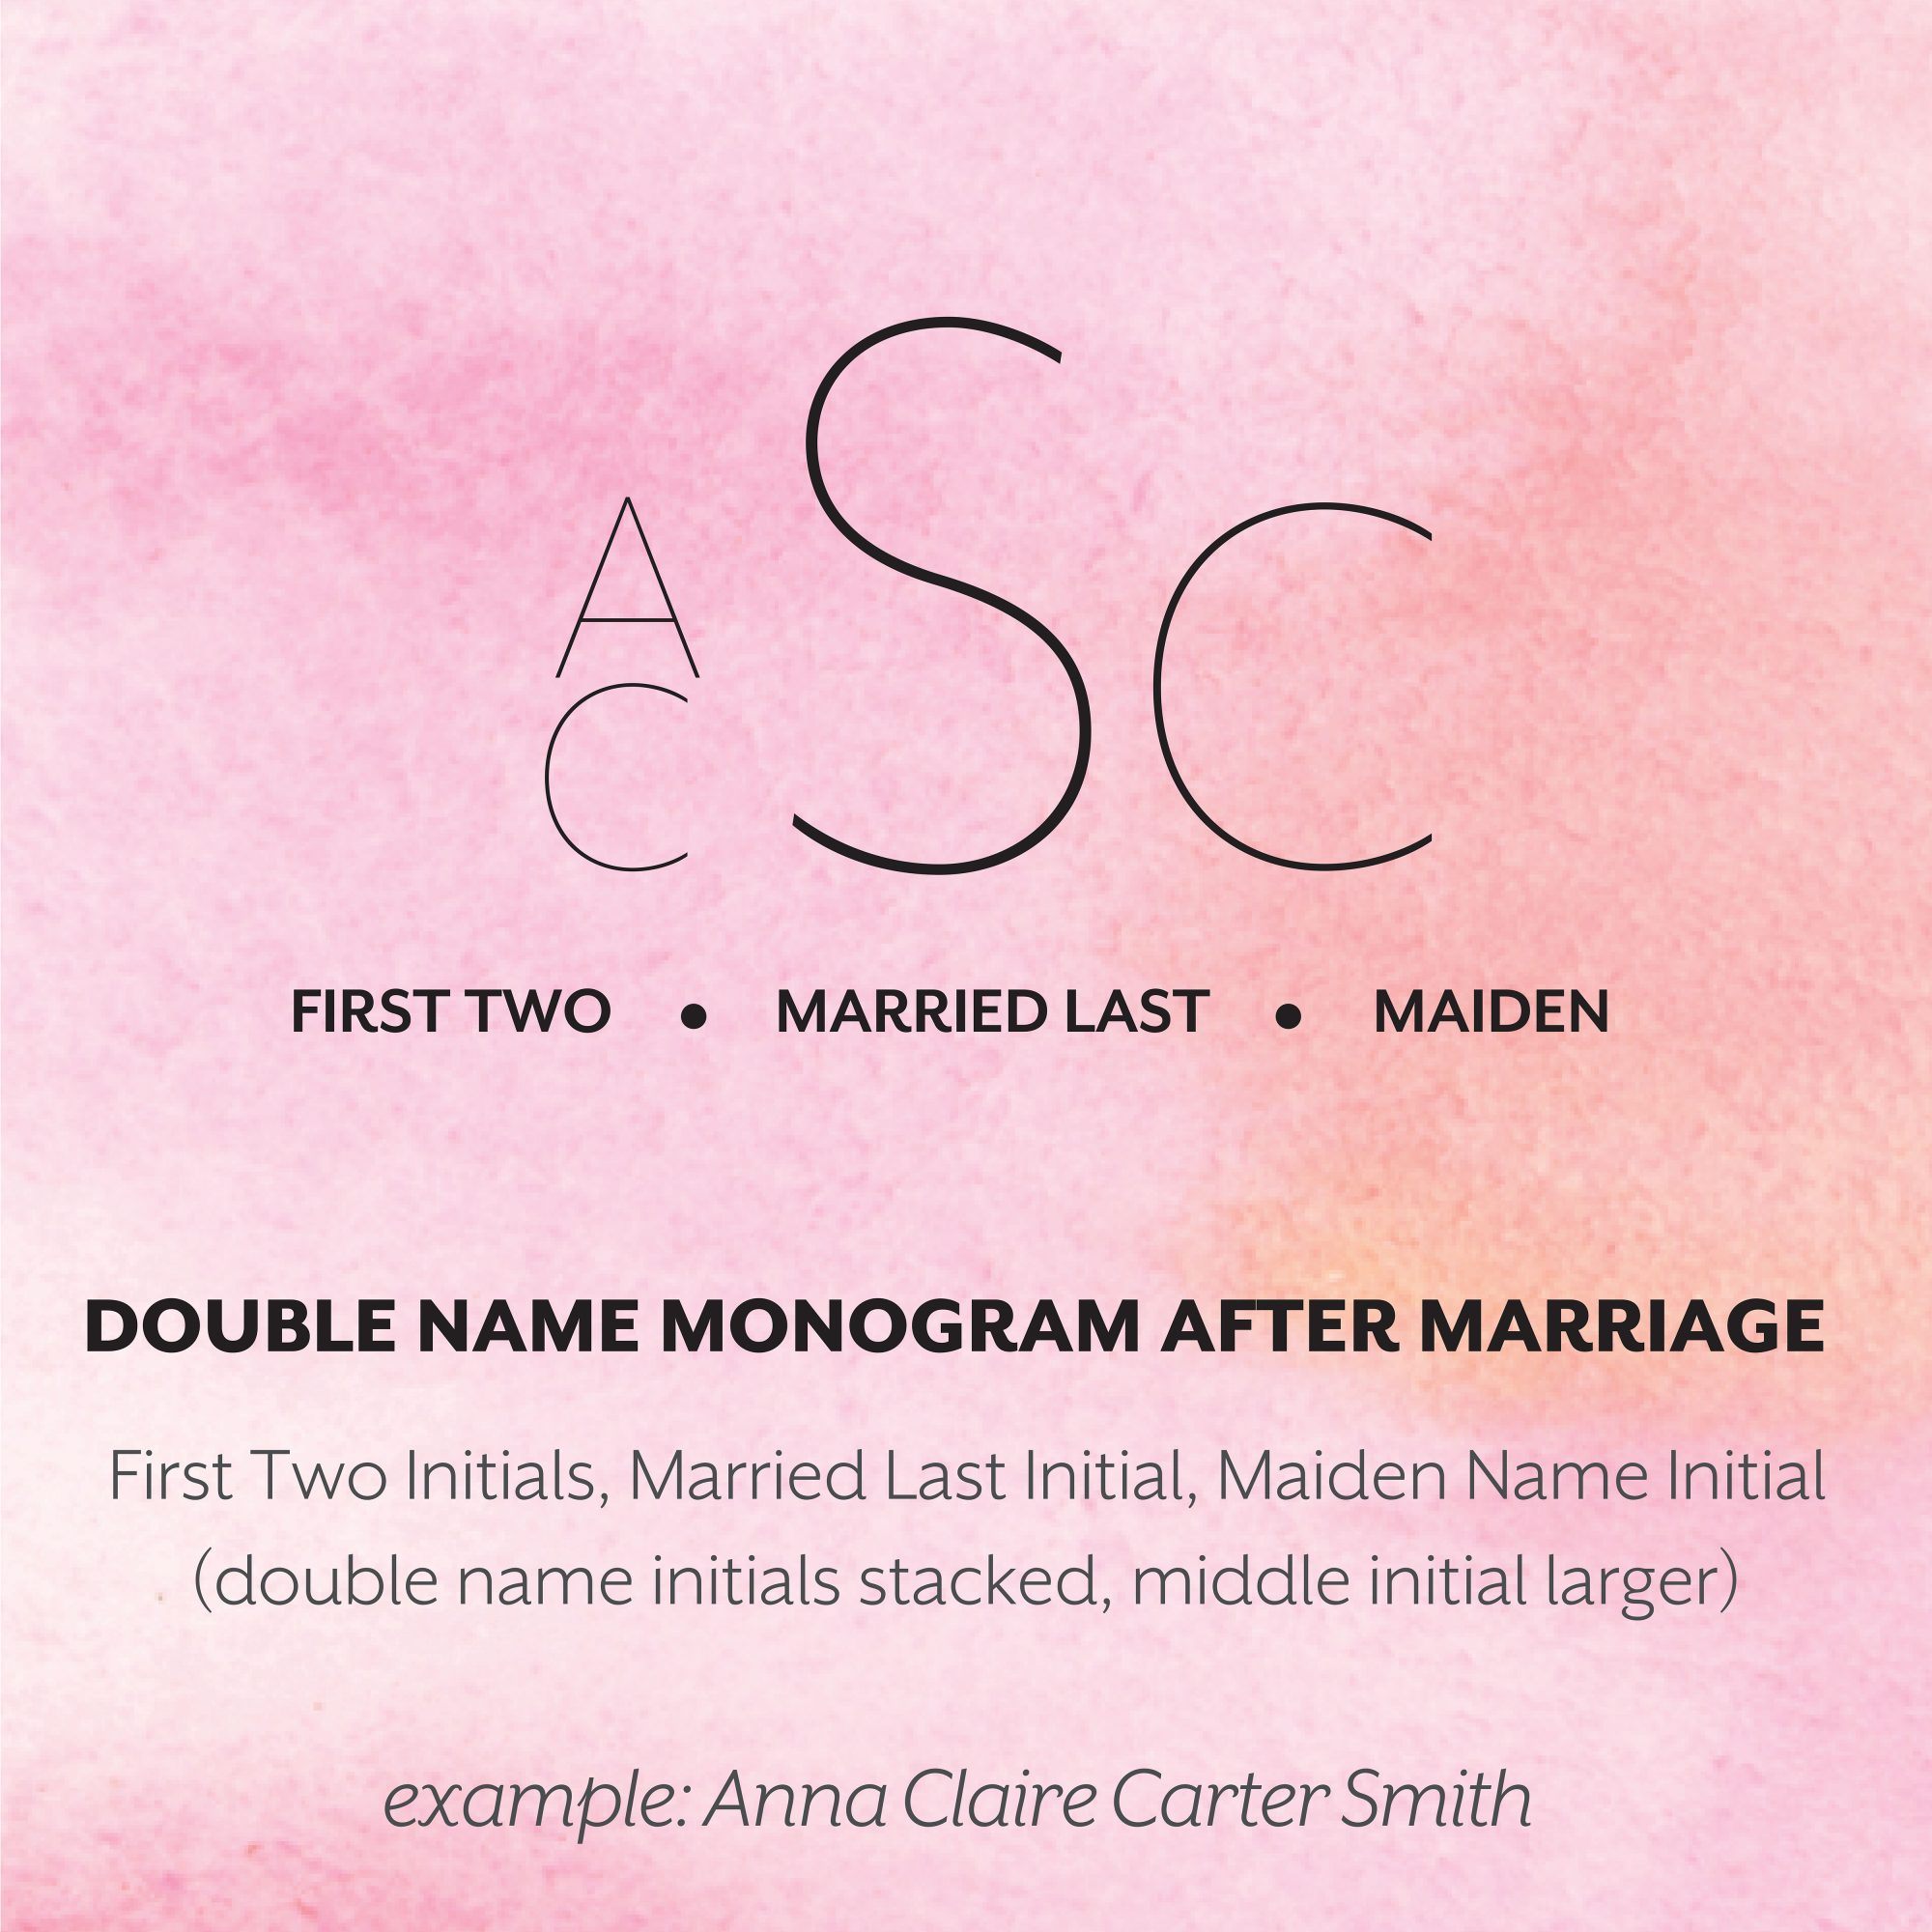 Double Name Monogram After Marriage